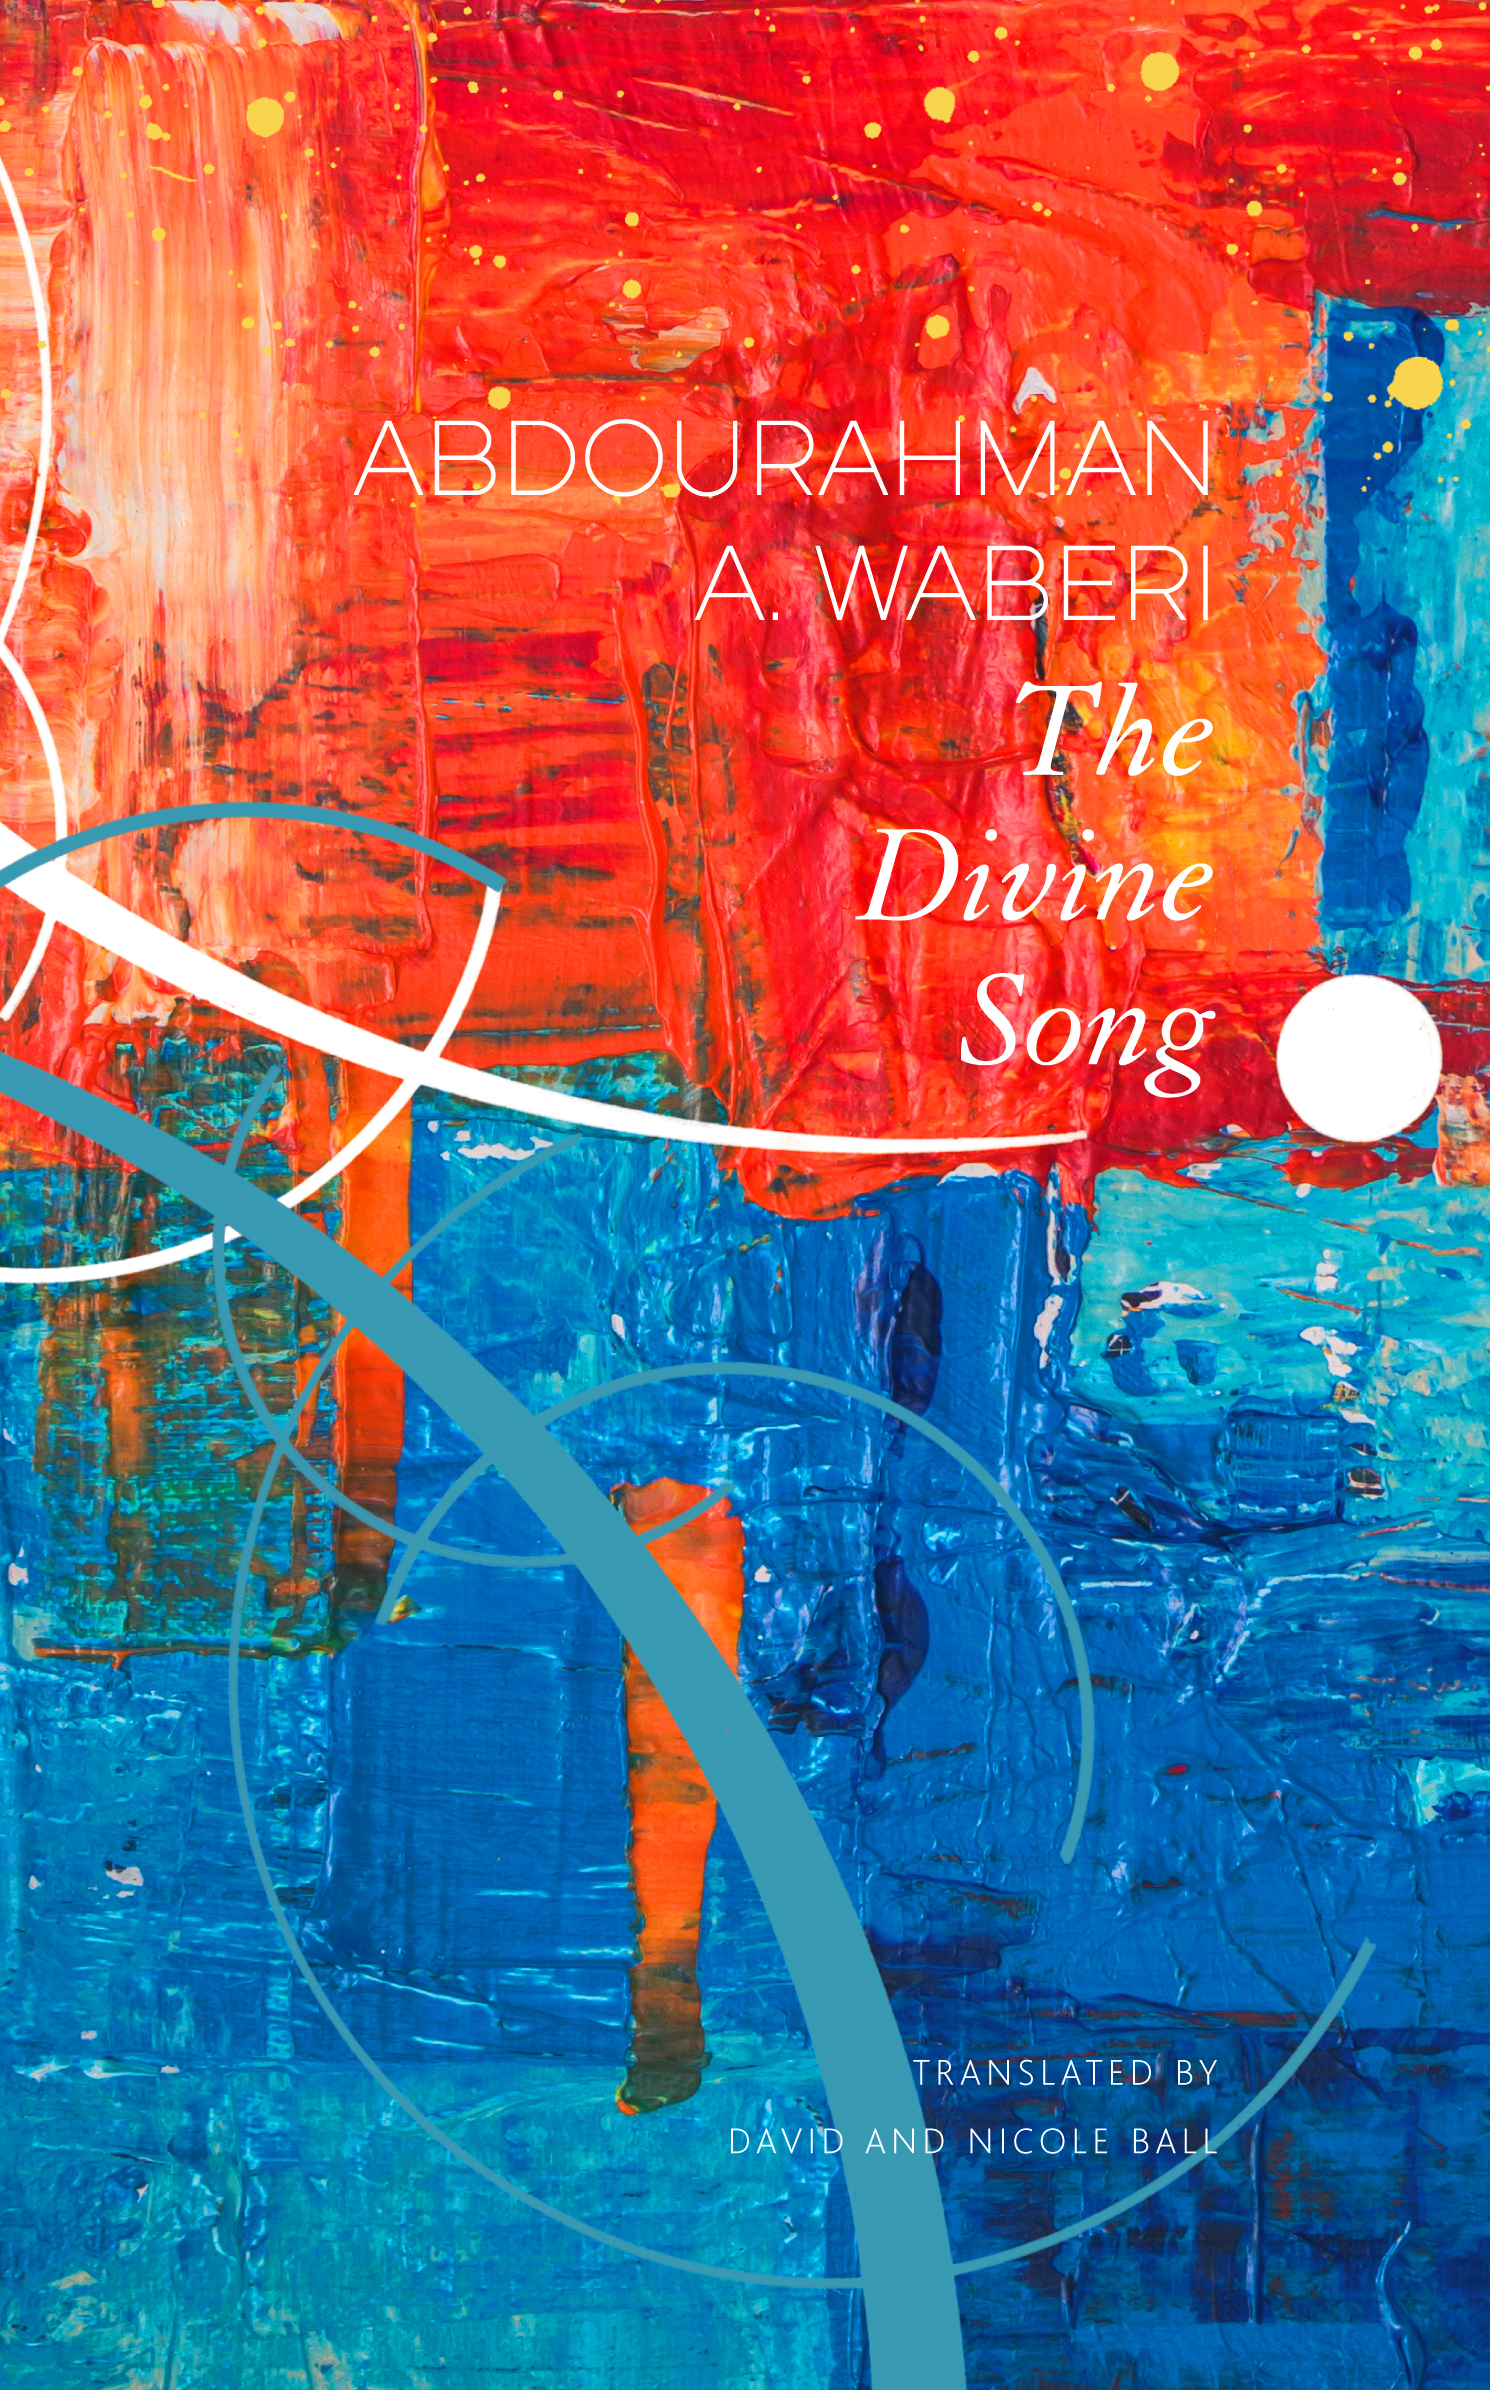 The Divine Song by Abdourahman A. Waberi | Seagull Books